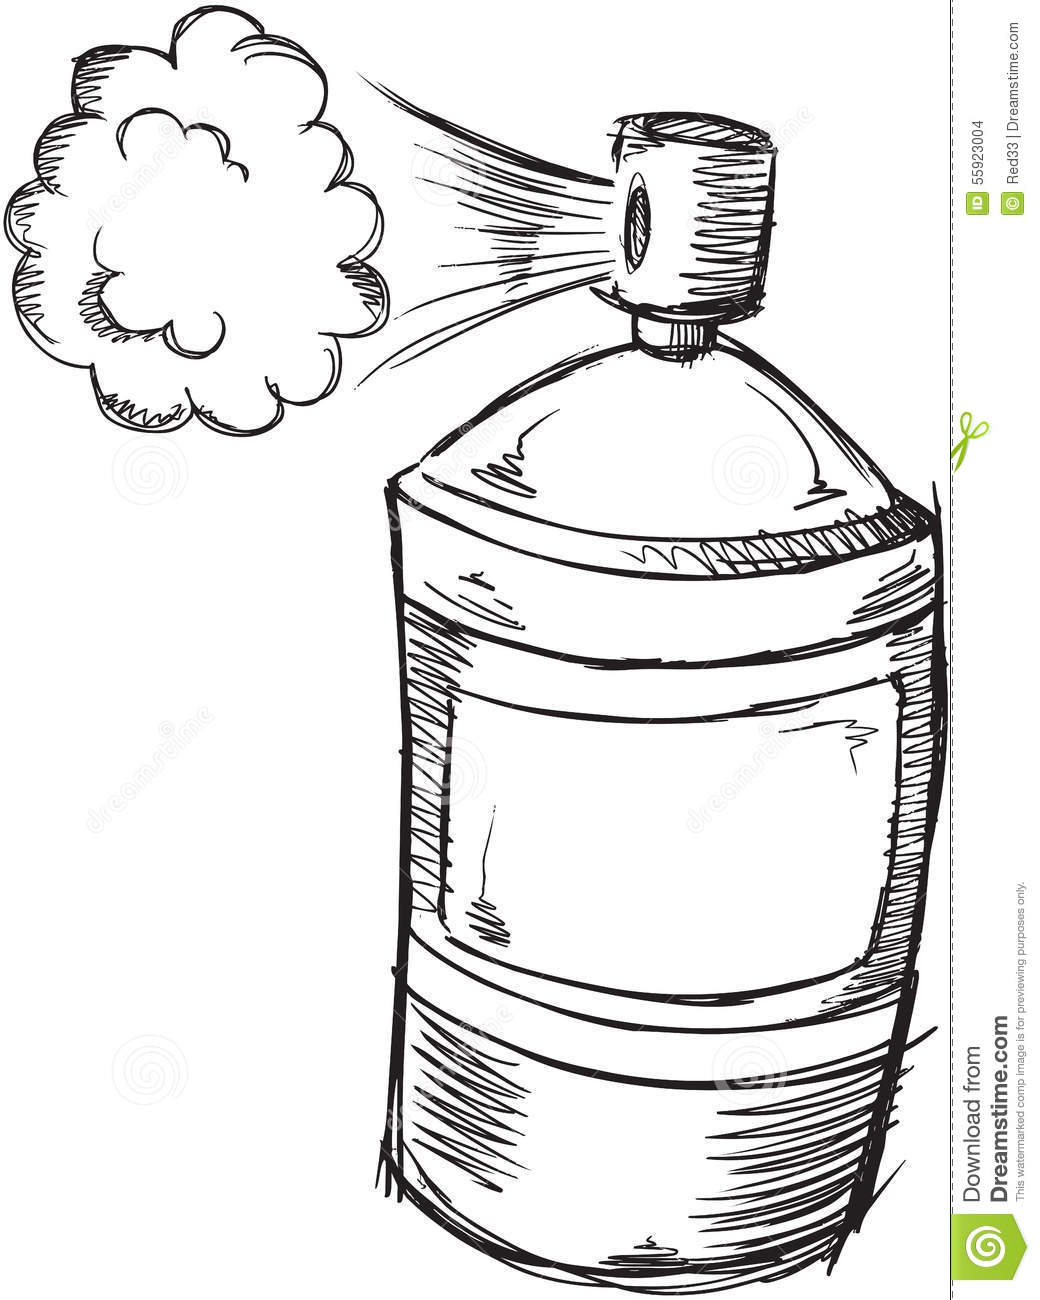 Doodle Spray Can Vector Stock Vector Illustration Of